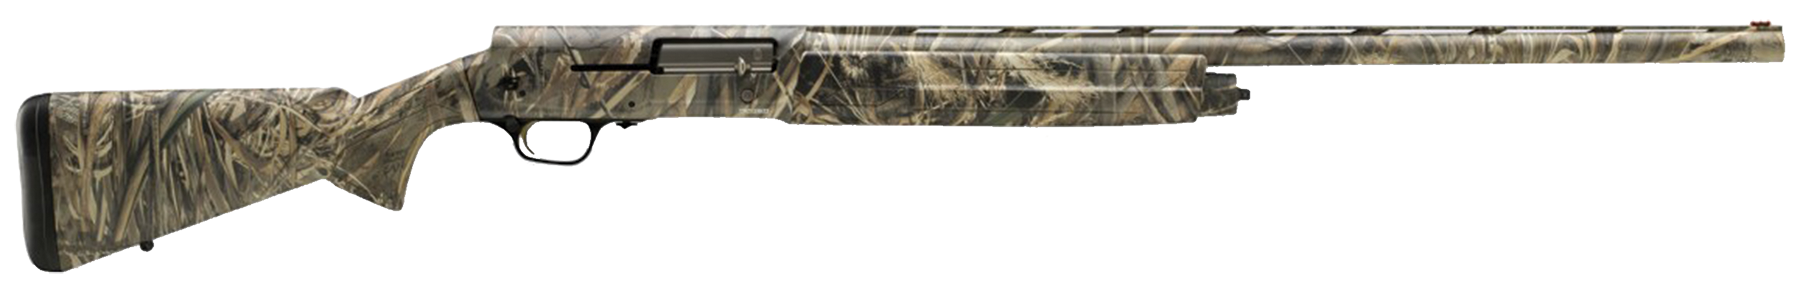 Browning A5 Semi-Auto Shotgun 3.5'' 12 Gauge 30'' Camo - Synthetic - Realtree Max-5